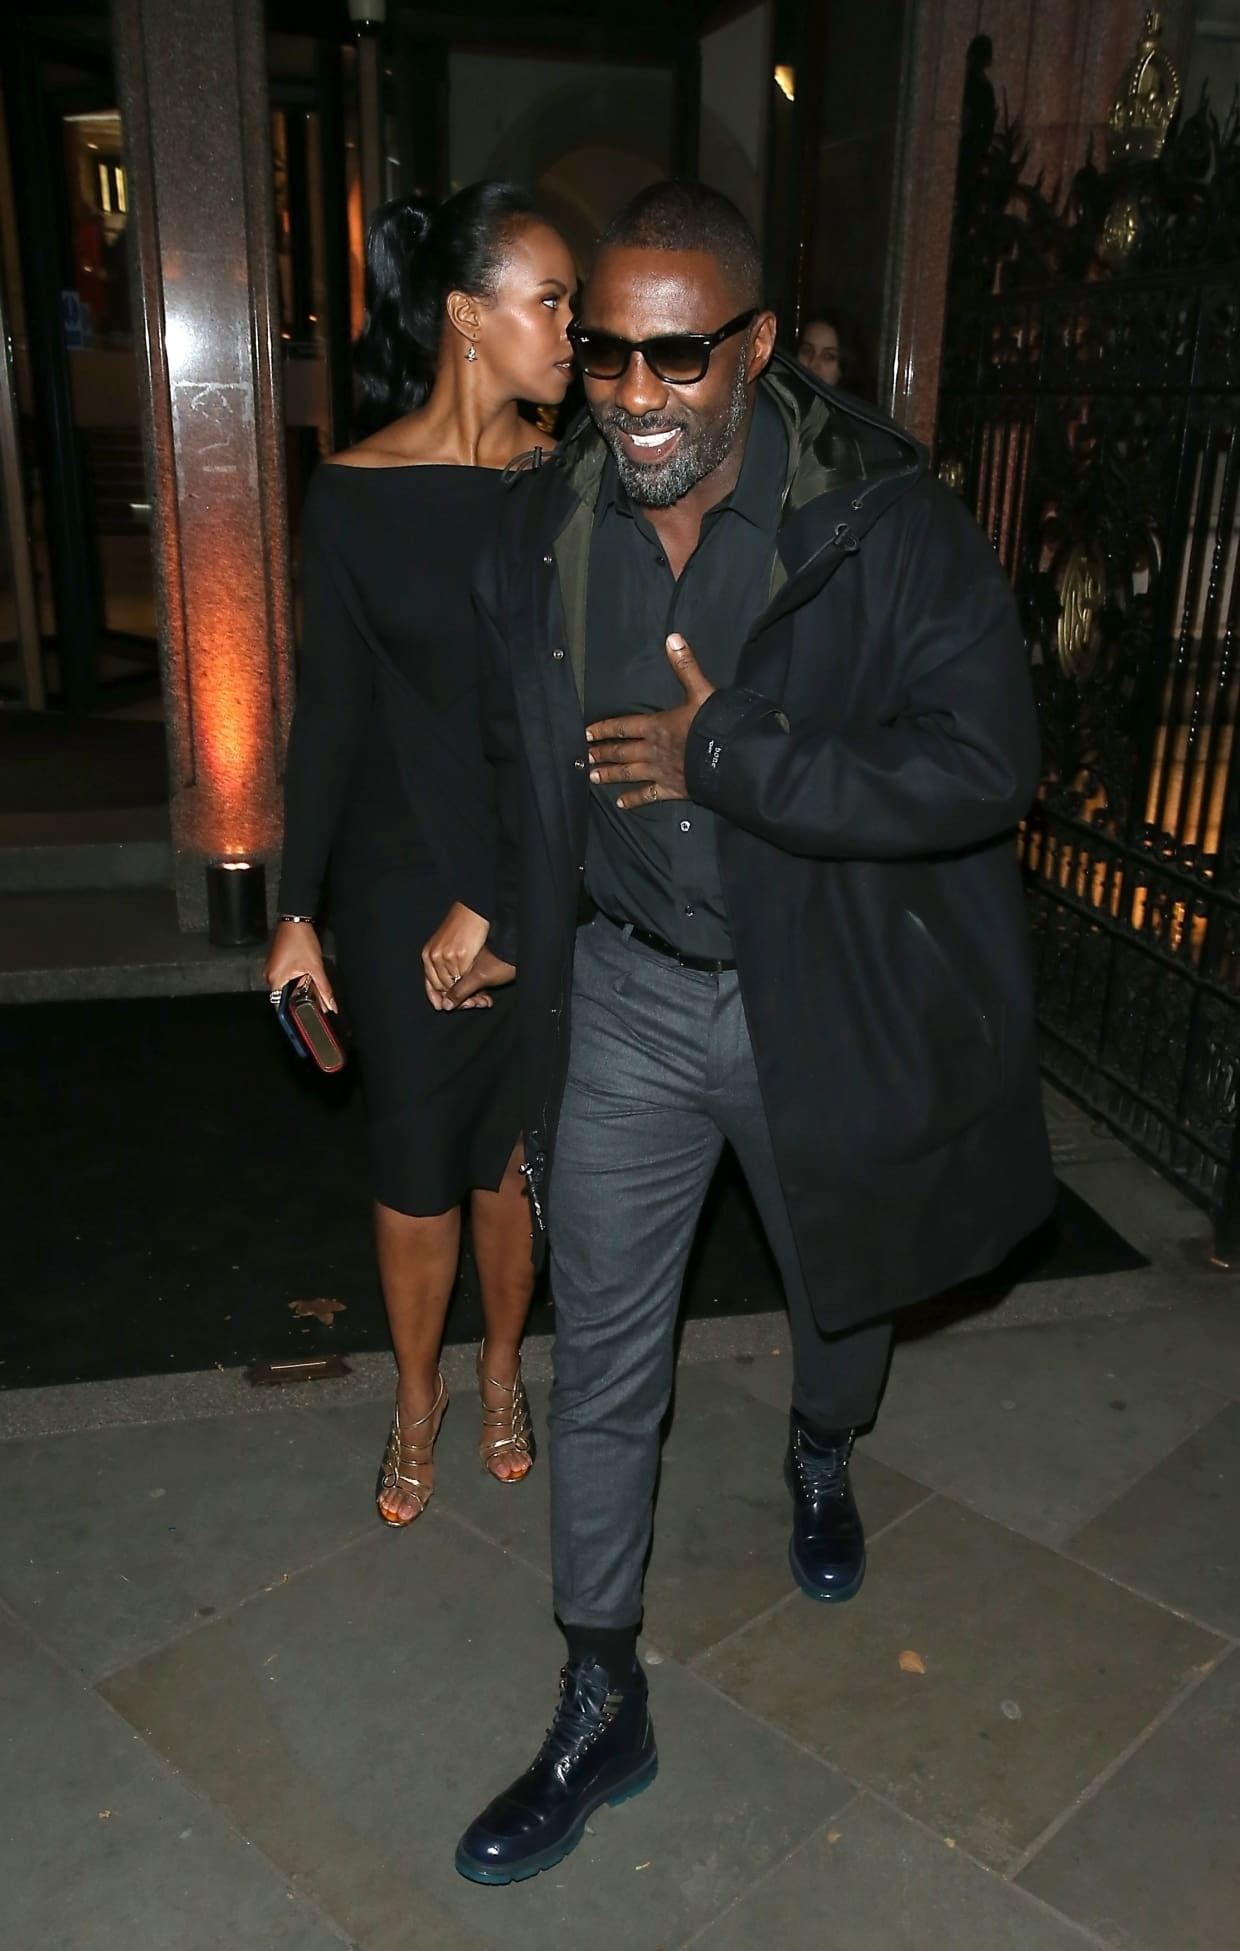 Idris Elba and his gorgeous fiancee, Sabrina Dhowre, step out